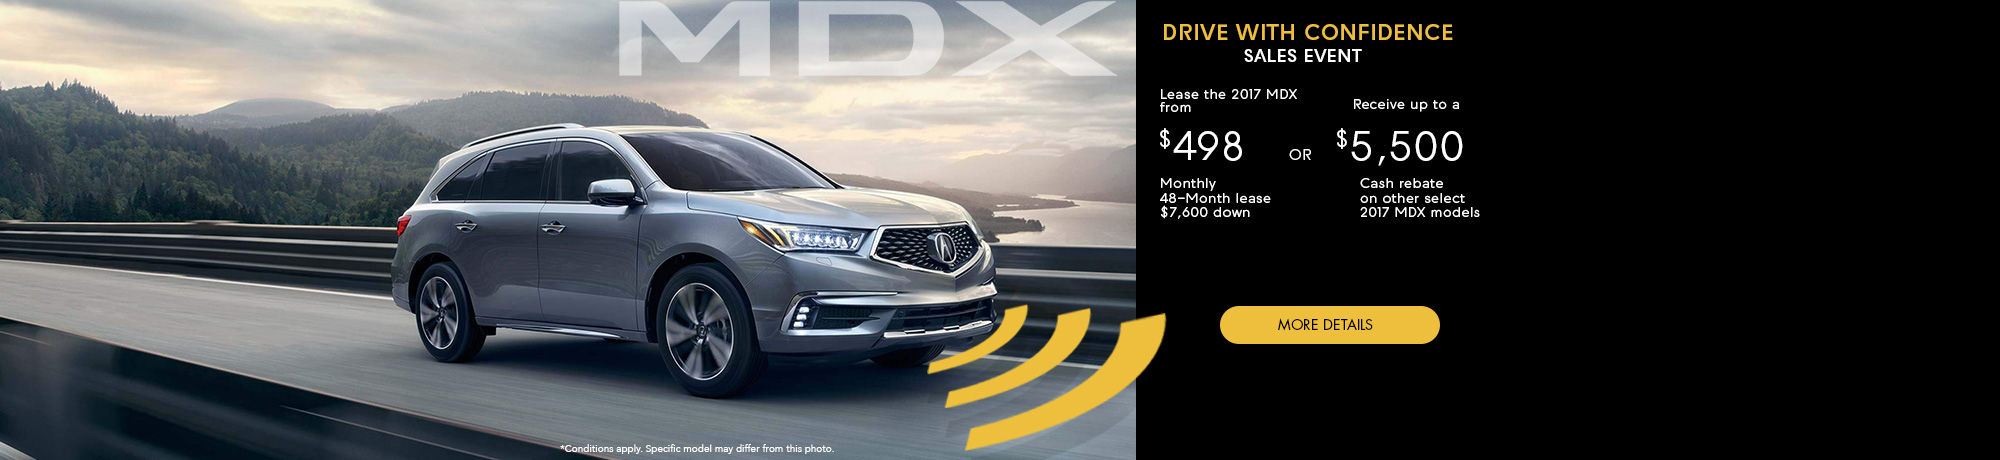 Drive With Confidence Sales Event - MDX - October